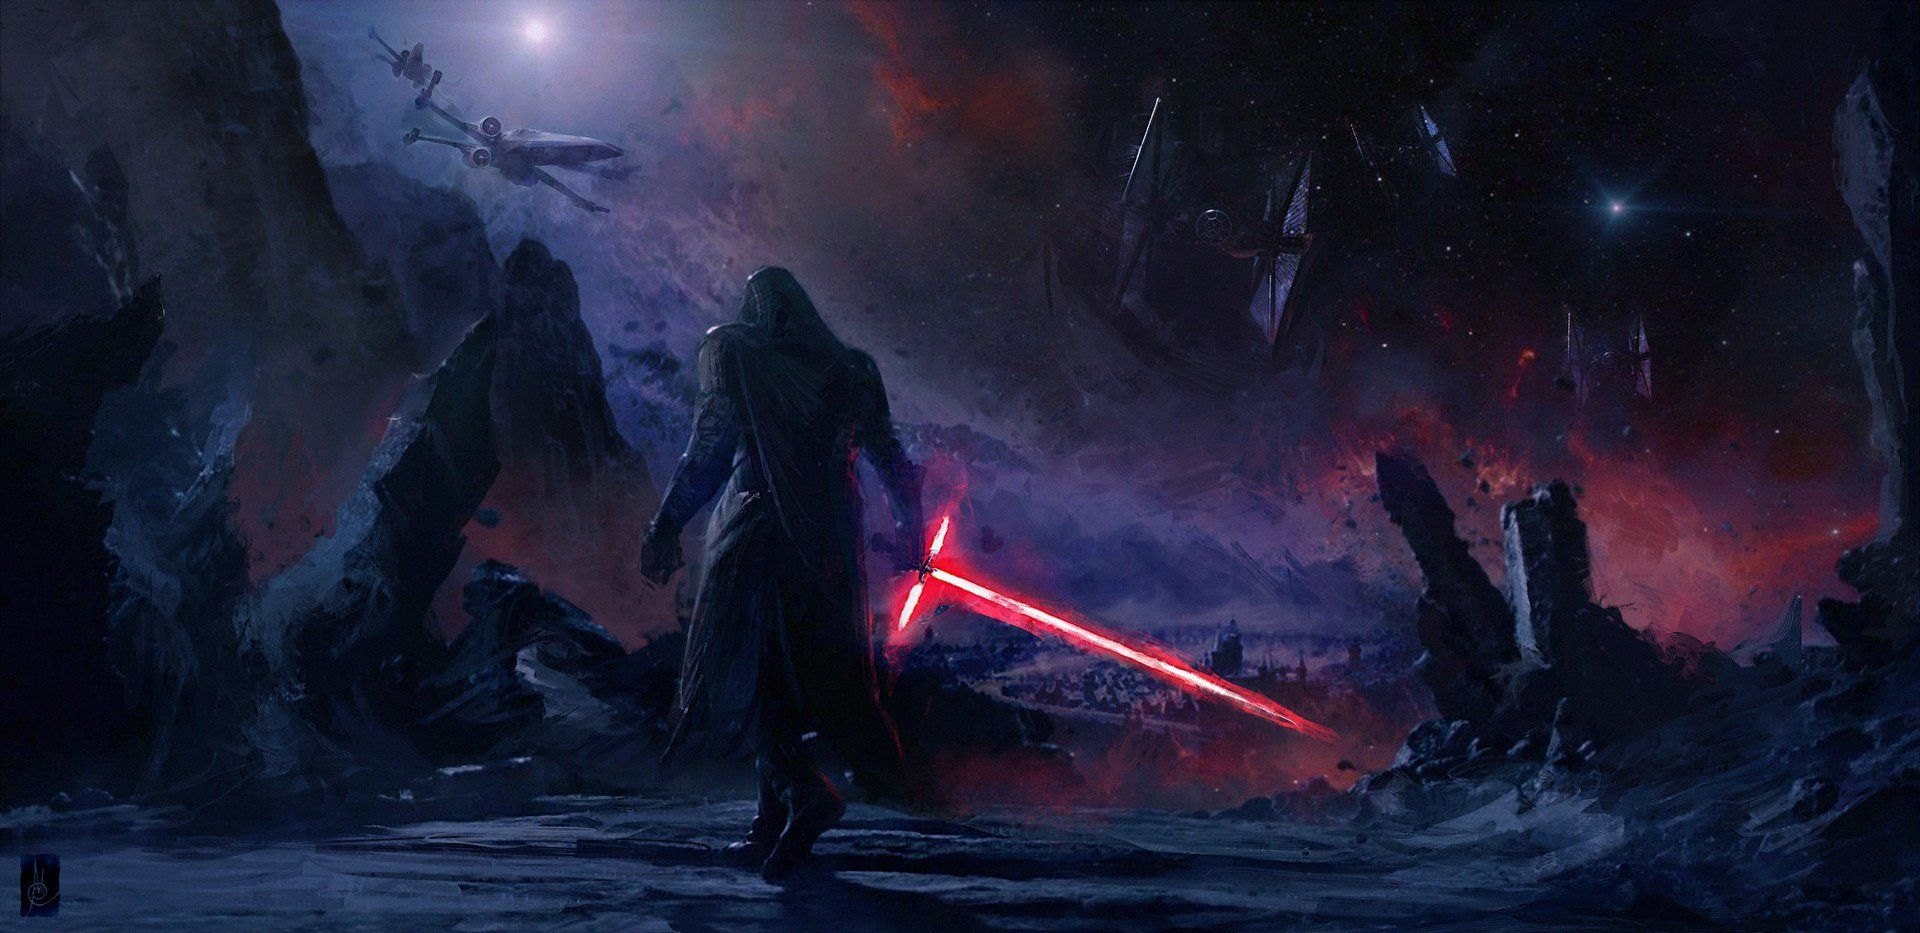 Star Wars 9 Wallpapers Top Free Star Wars 9 Backgrounds Wallpaperaccess